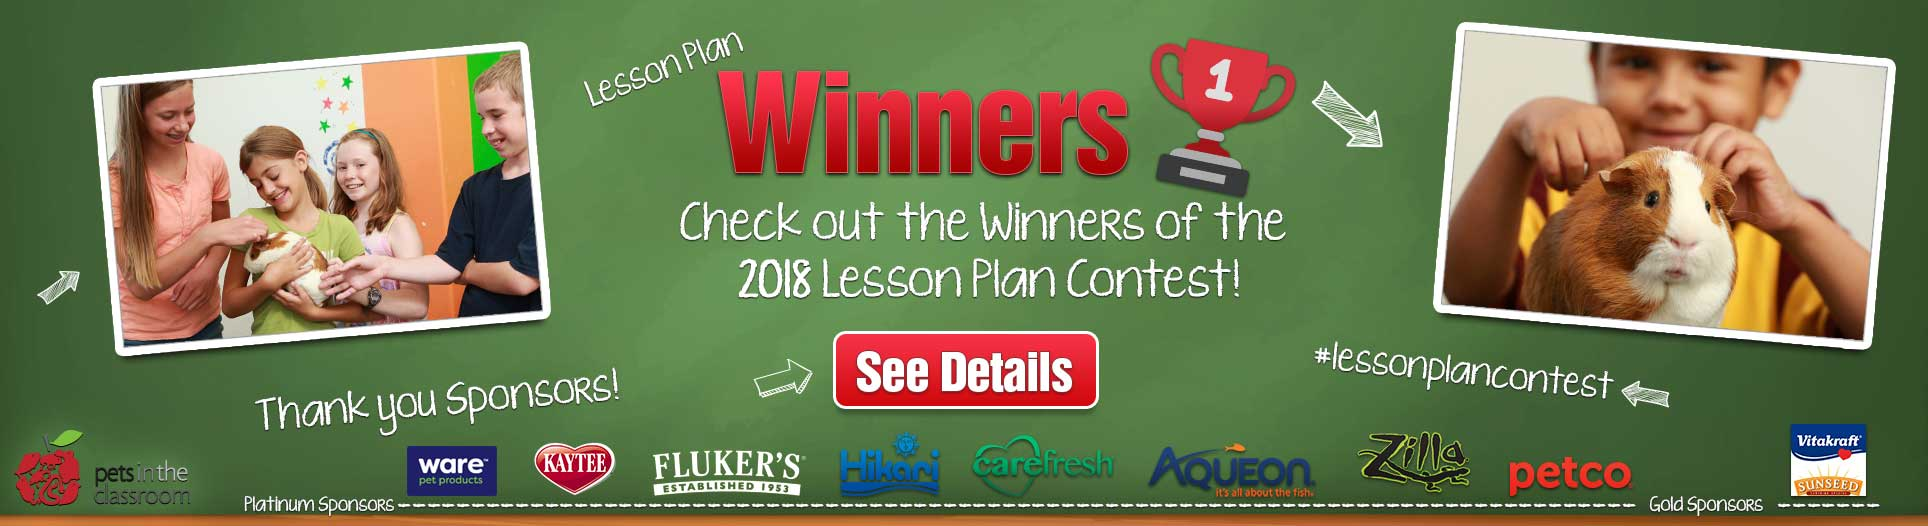 2018 Lesson Plan Contest Winners